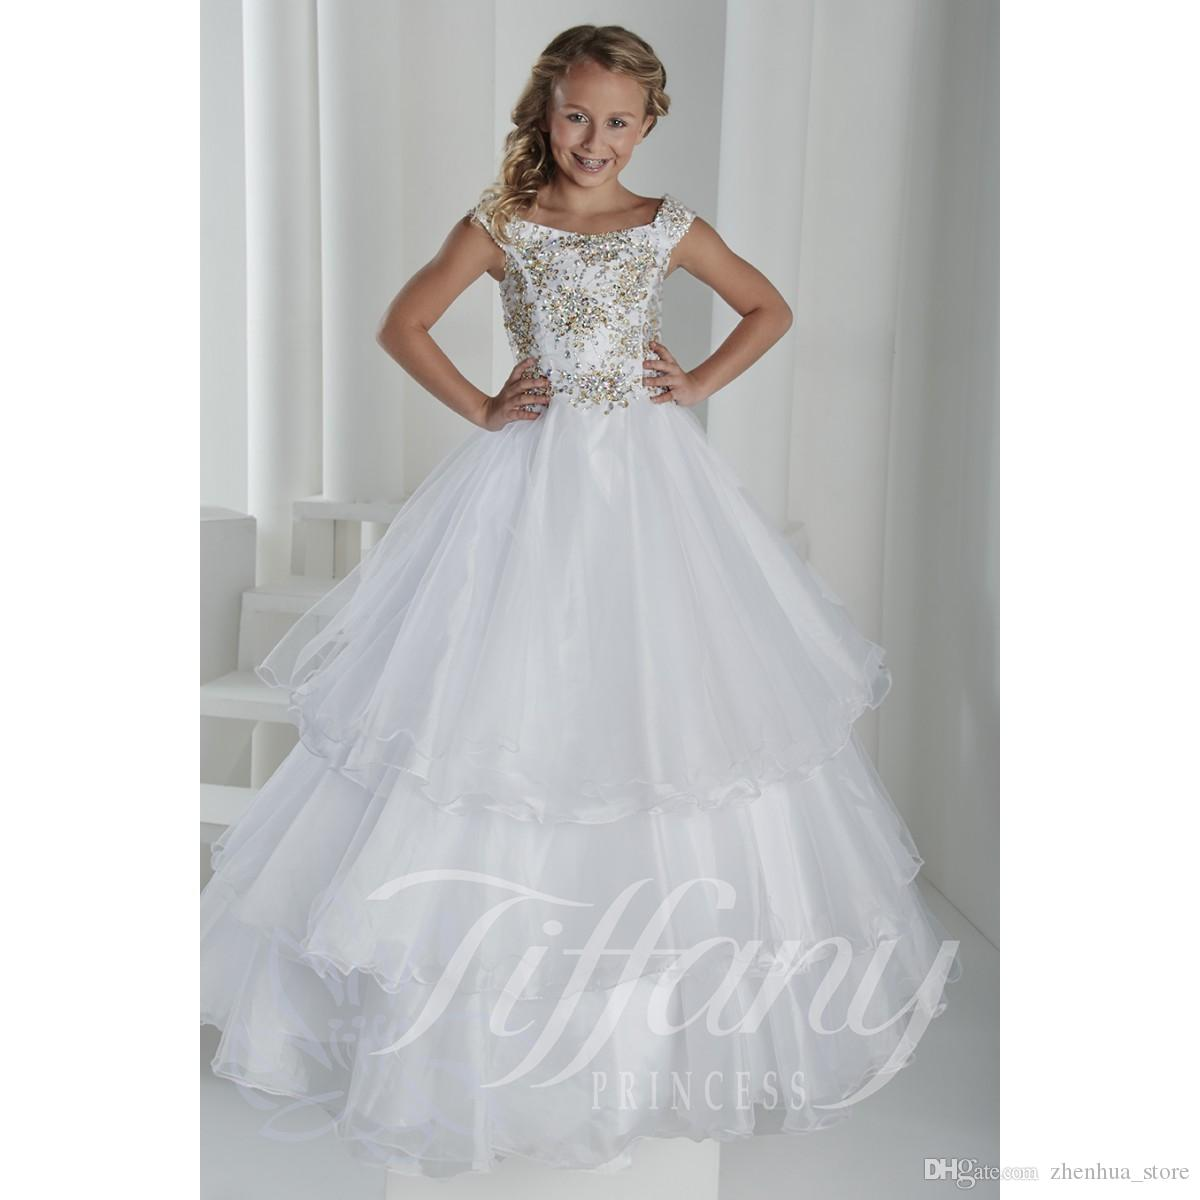 white little girls pageant dress 13406 beads sequins floor length ball gown custom made party. Black Bedroom Furniture Sets. Home Design Ideas